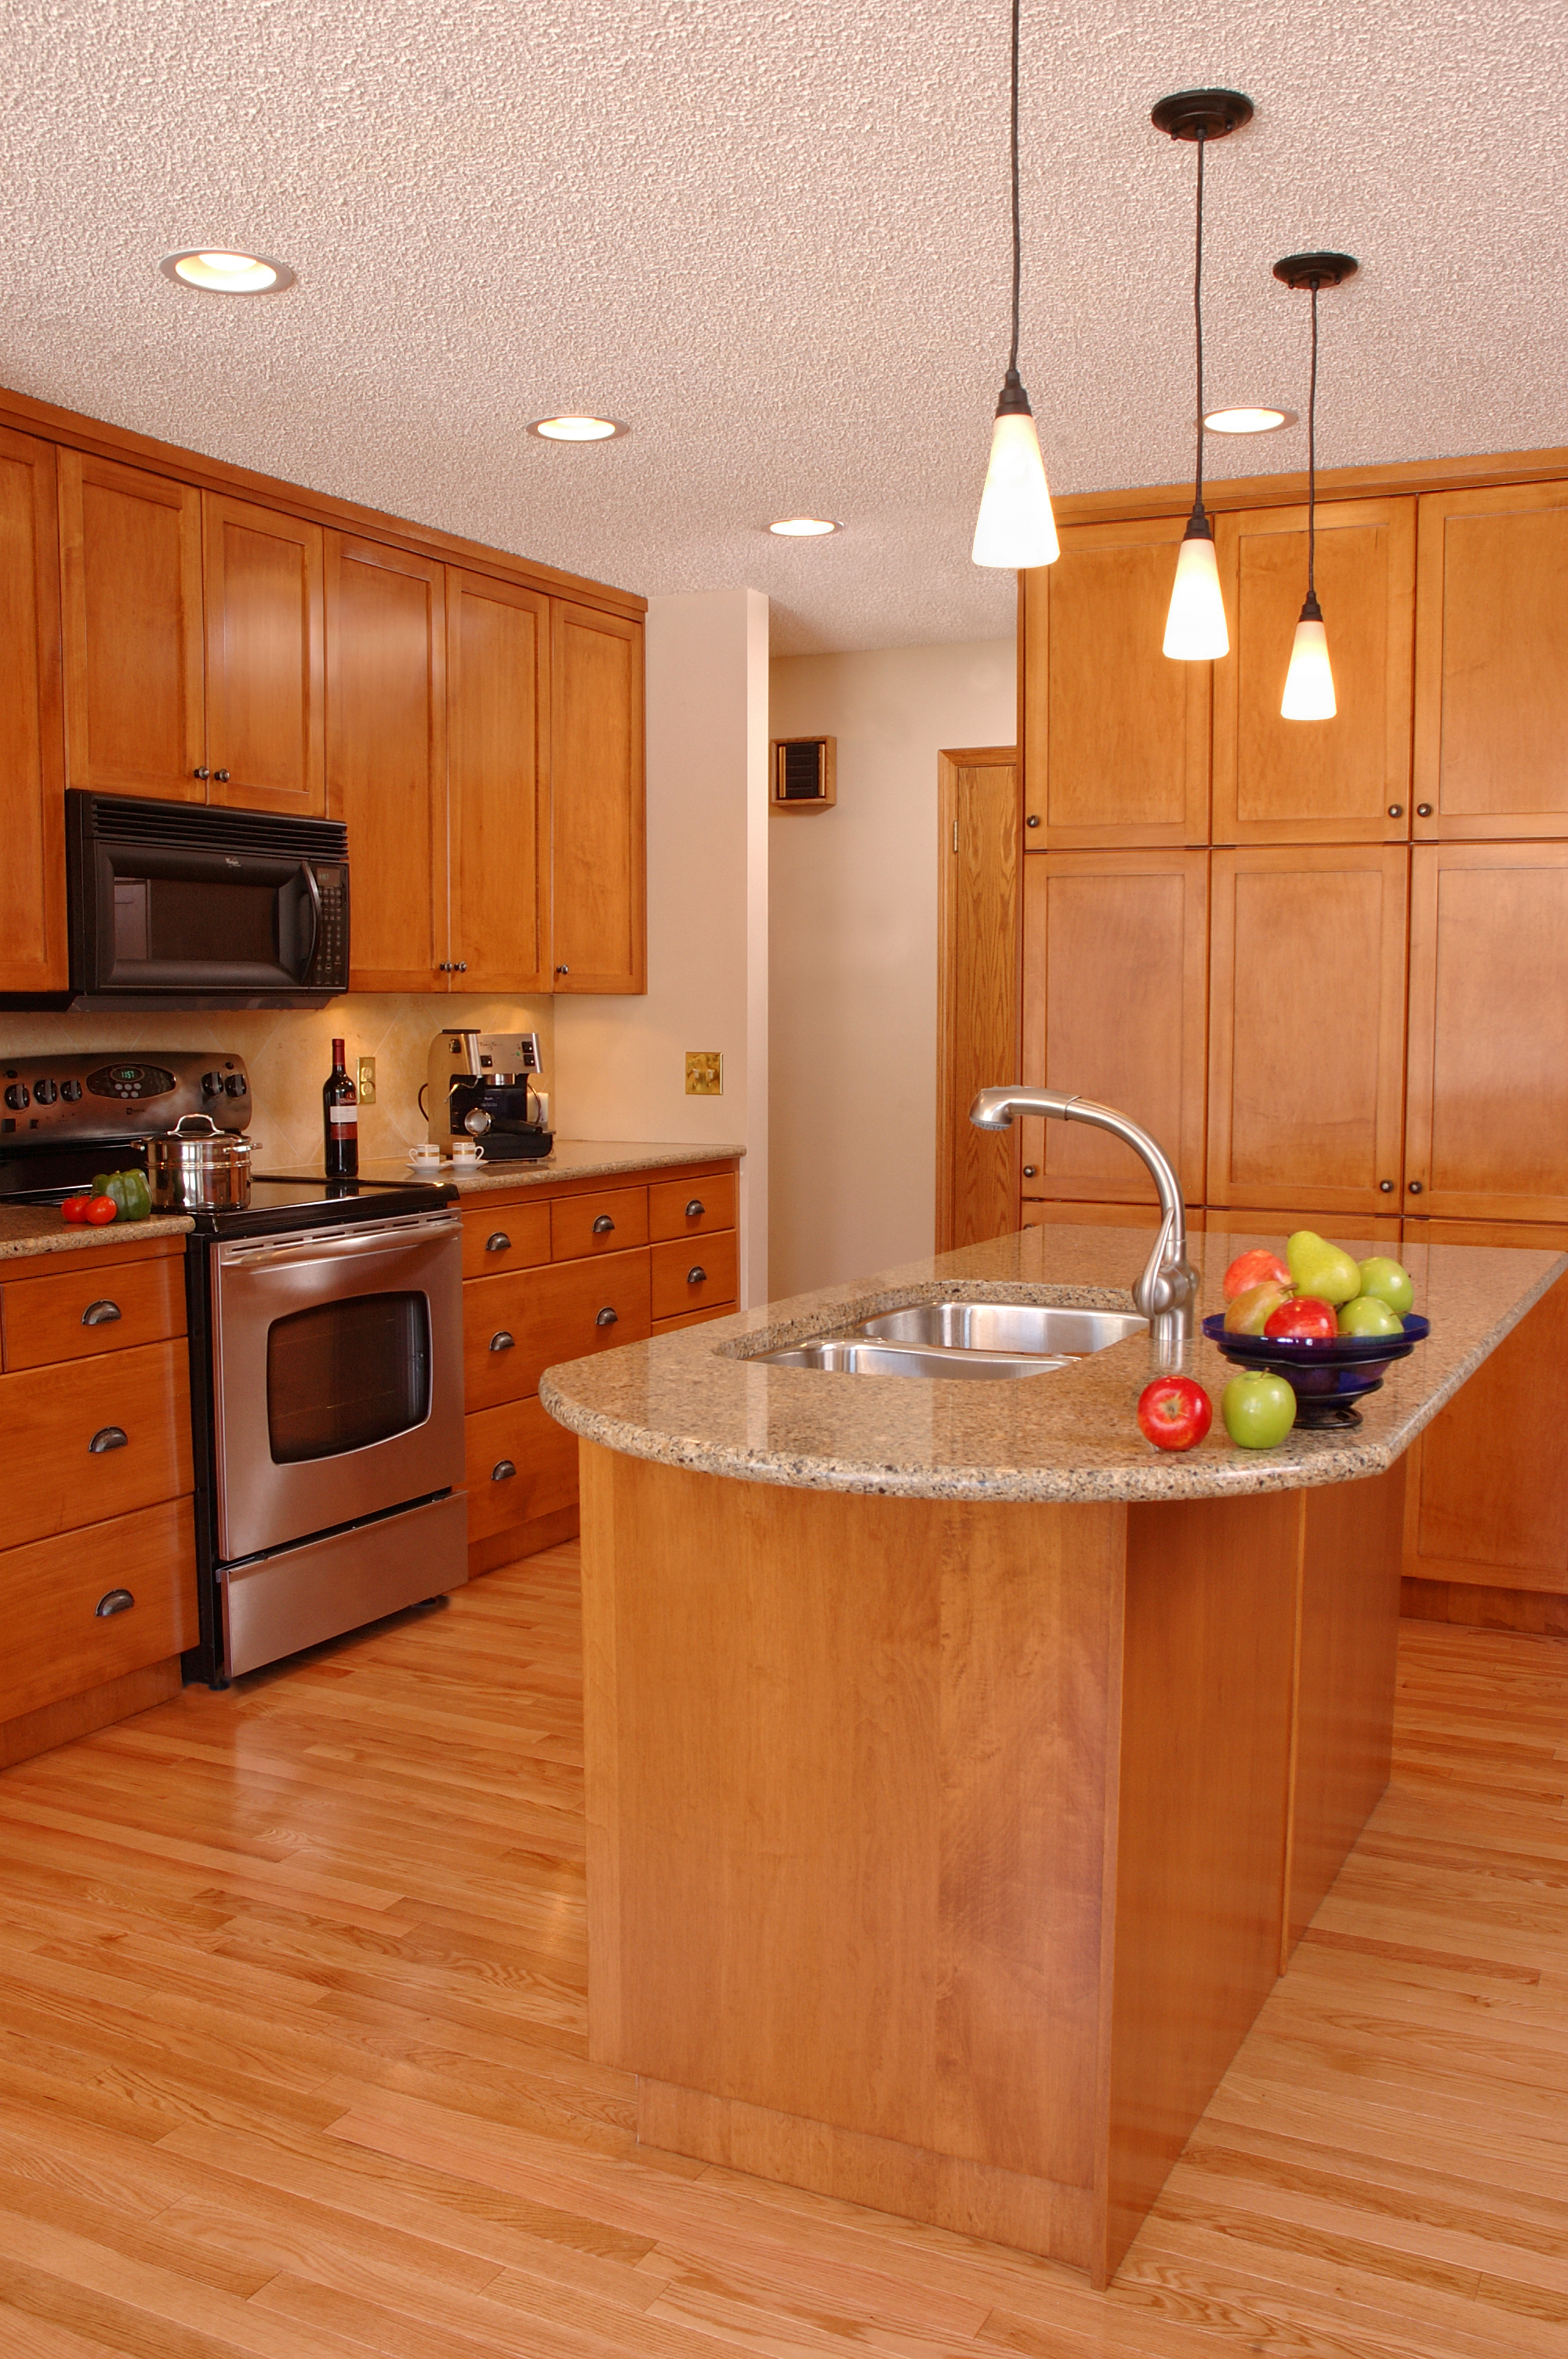 Interior of kitchen with fruit bowl on counter